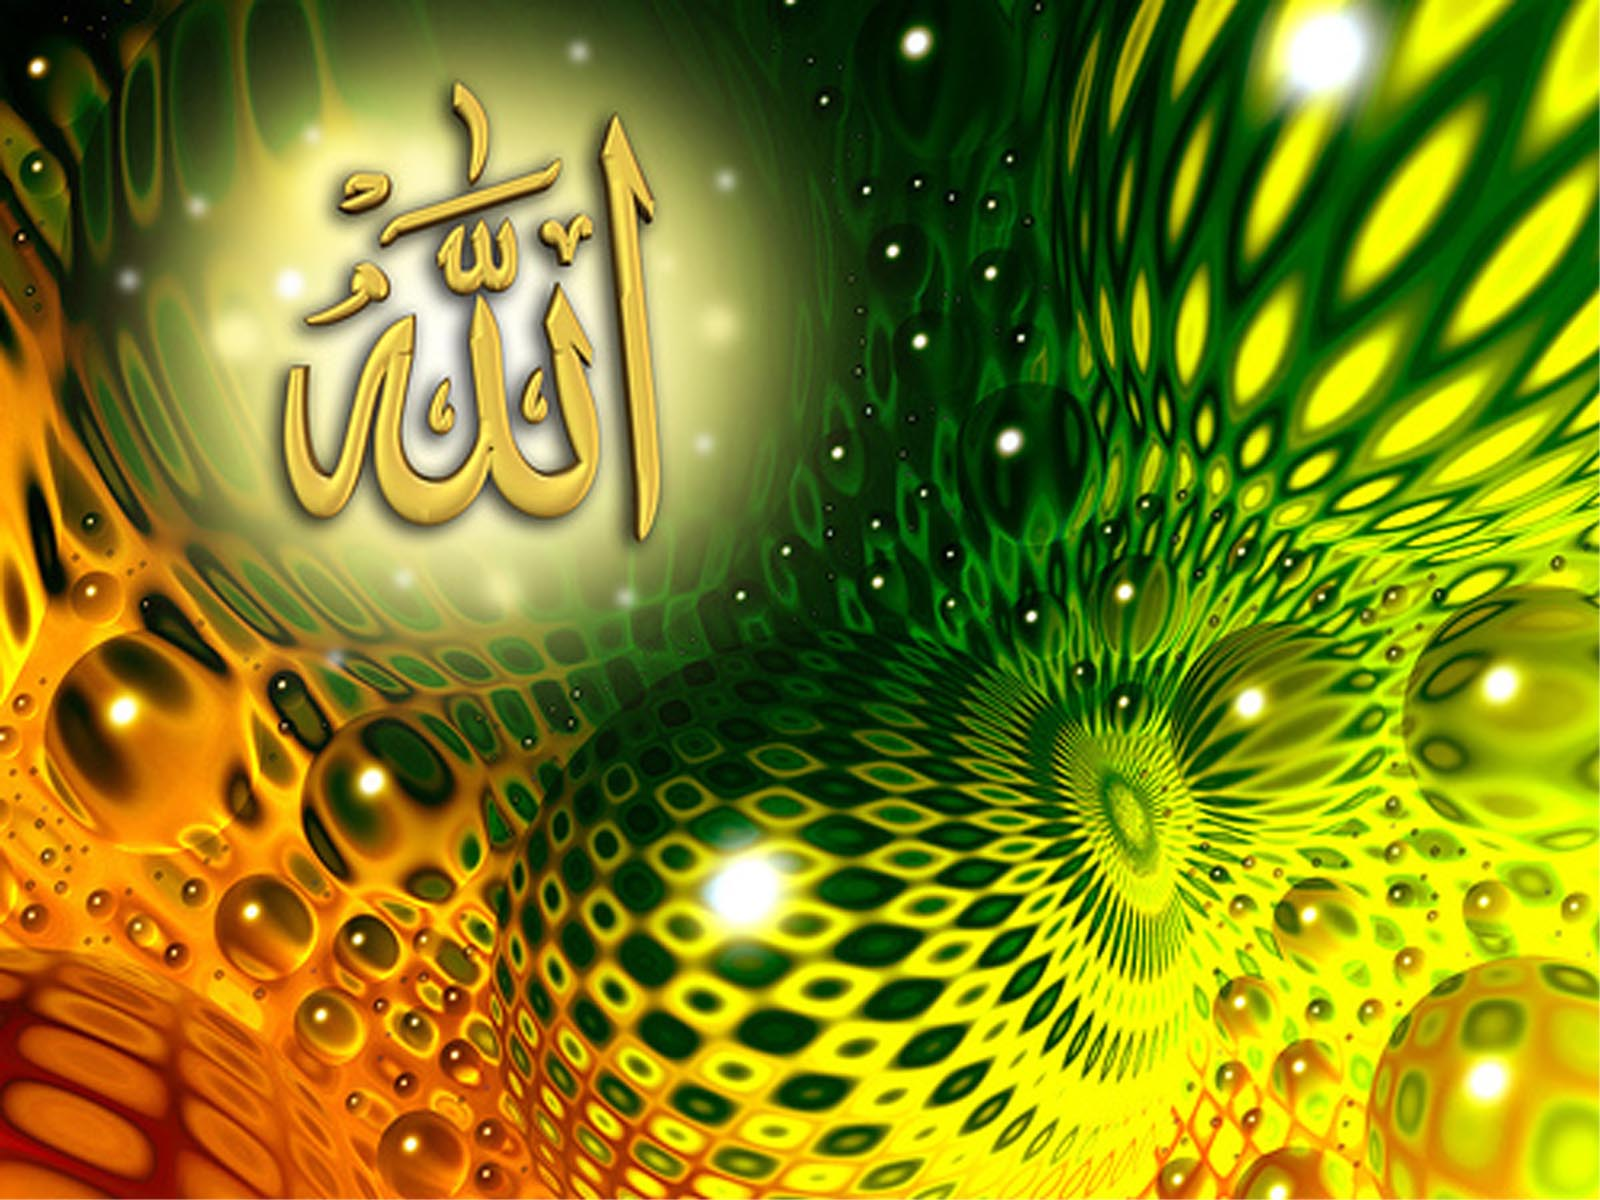 Allah name wallpaper #2